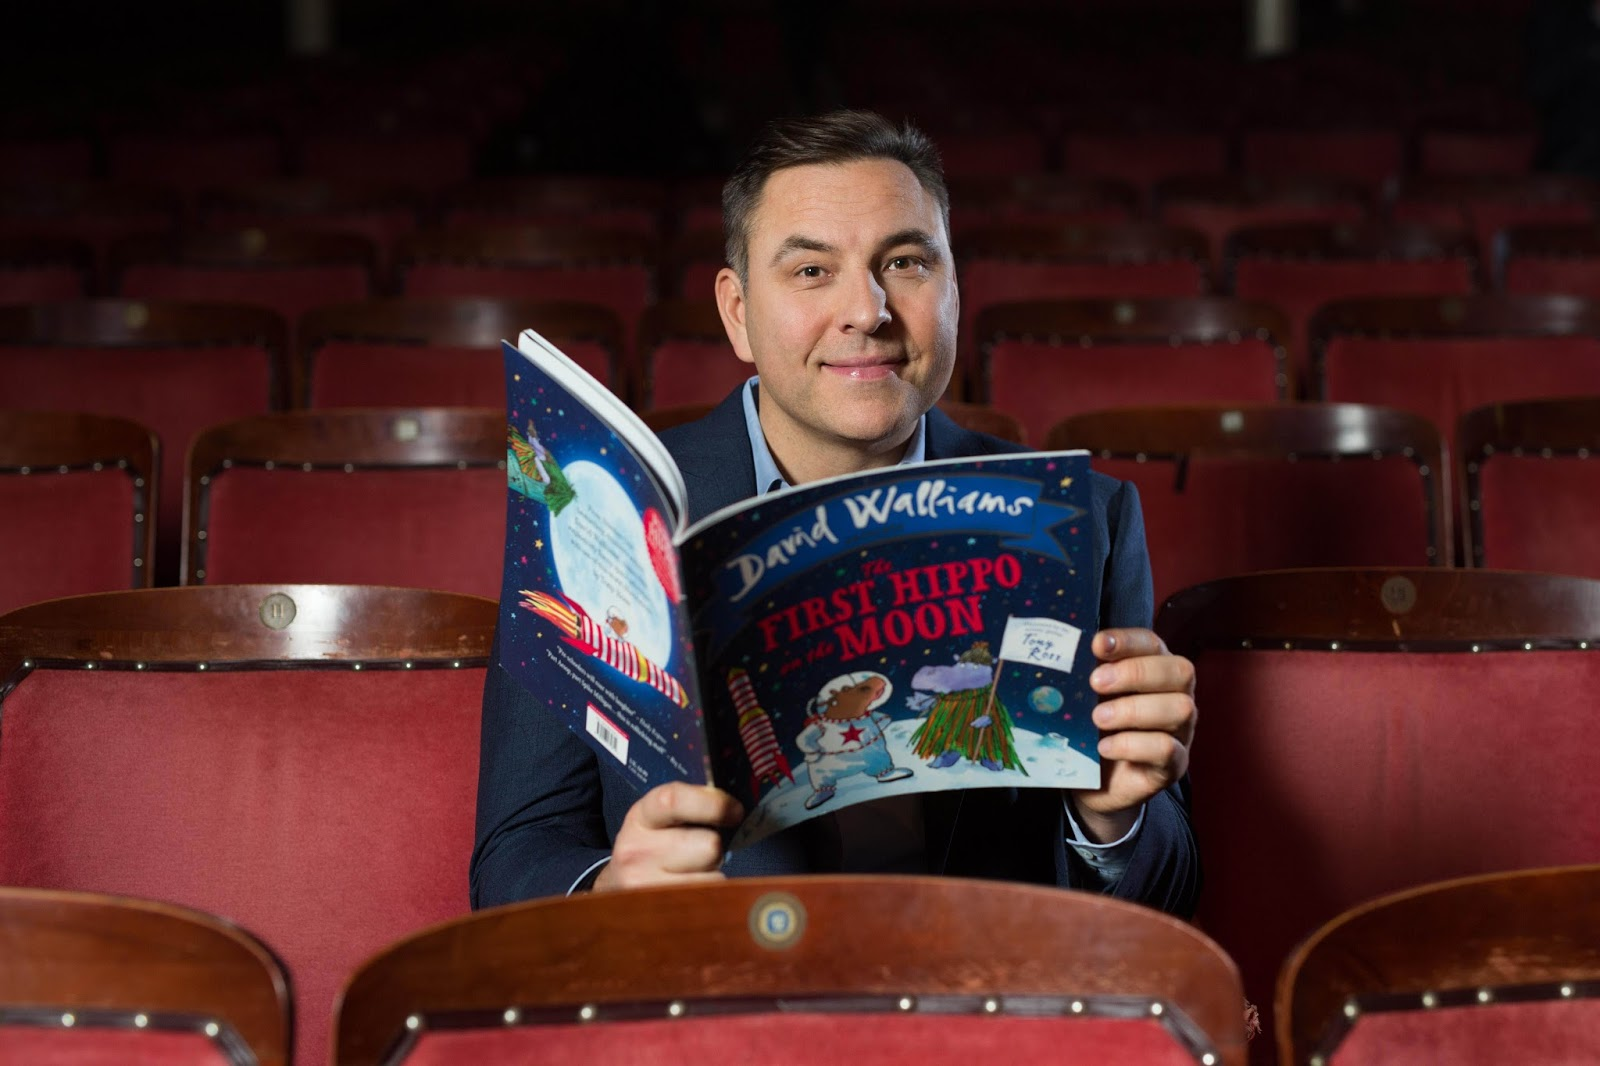 The First Hippo on the Moon by David Walliams makes it's North East Theatre Debut at the Tyne Theatre and Opera House , Newcastle | Saturday 4 Feb 2017 | 1:30pm plus ticket giveaway